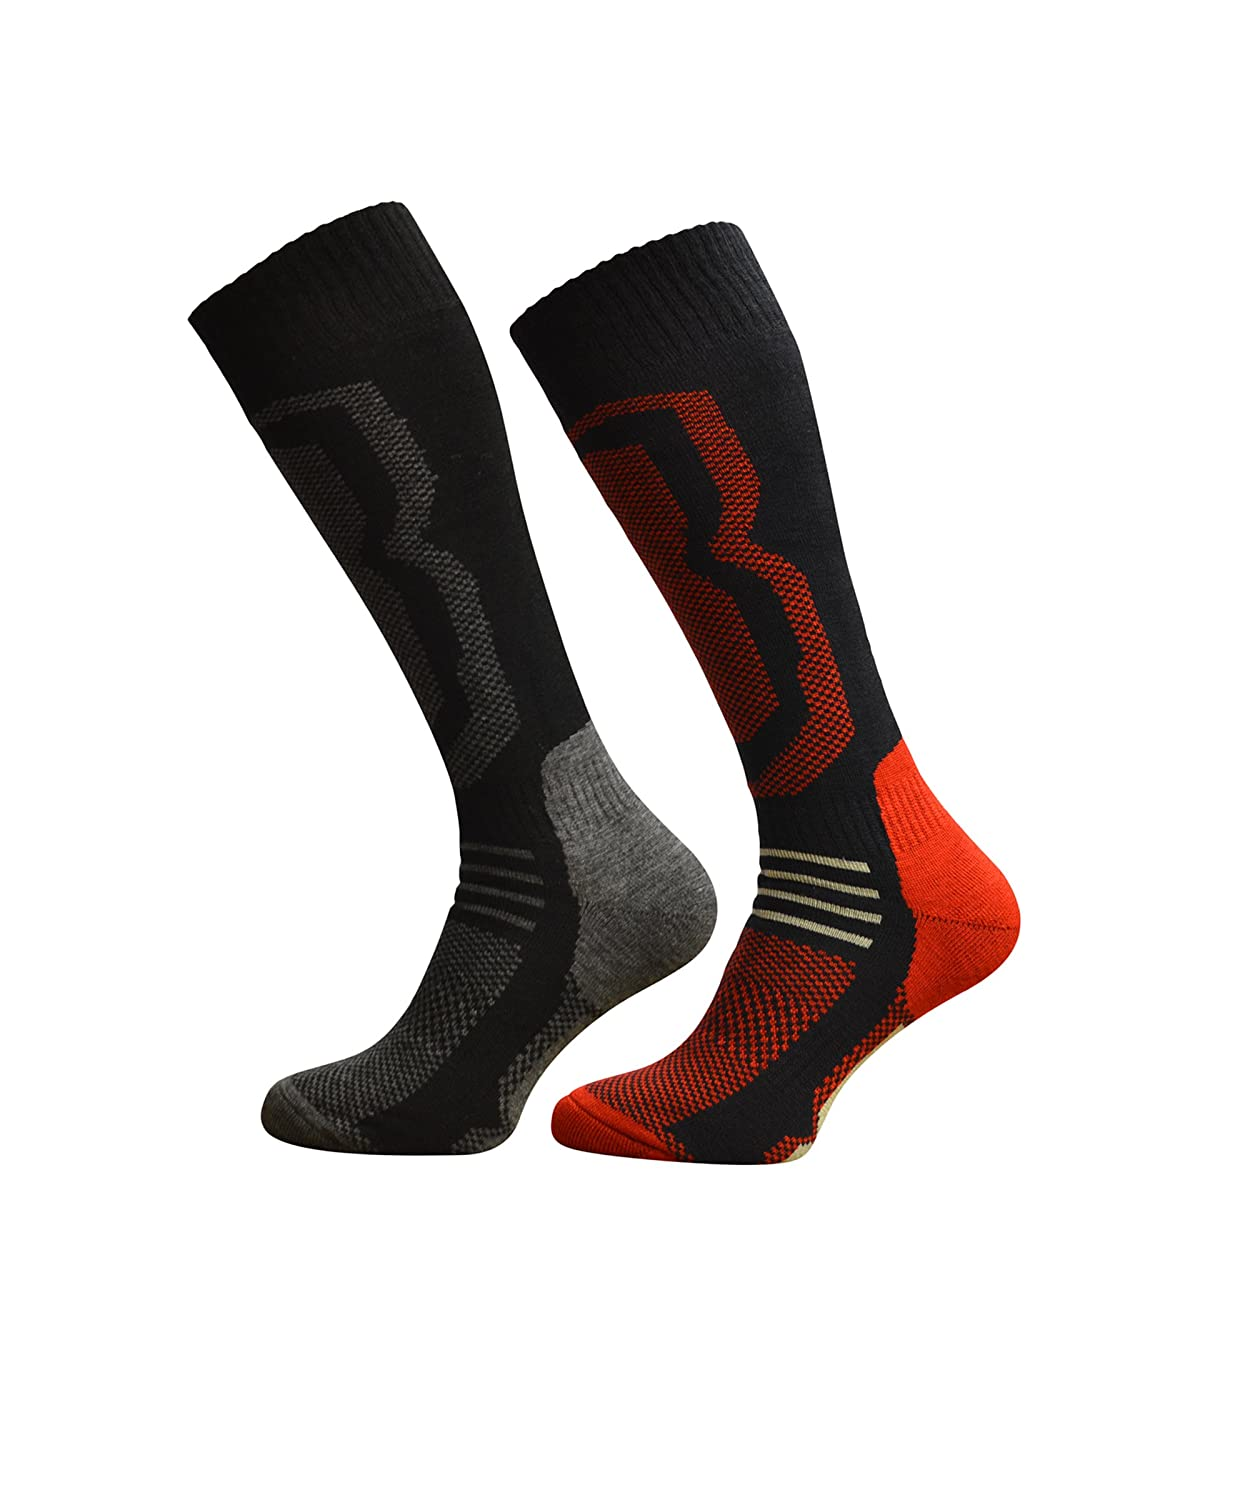 4 Paar Winter, Fresh Feel Herren SKI-Socken, Gr. 39-46, High Performance